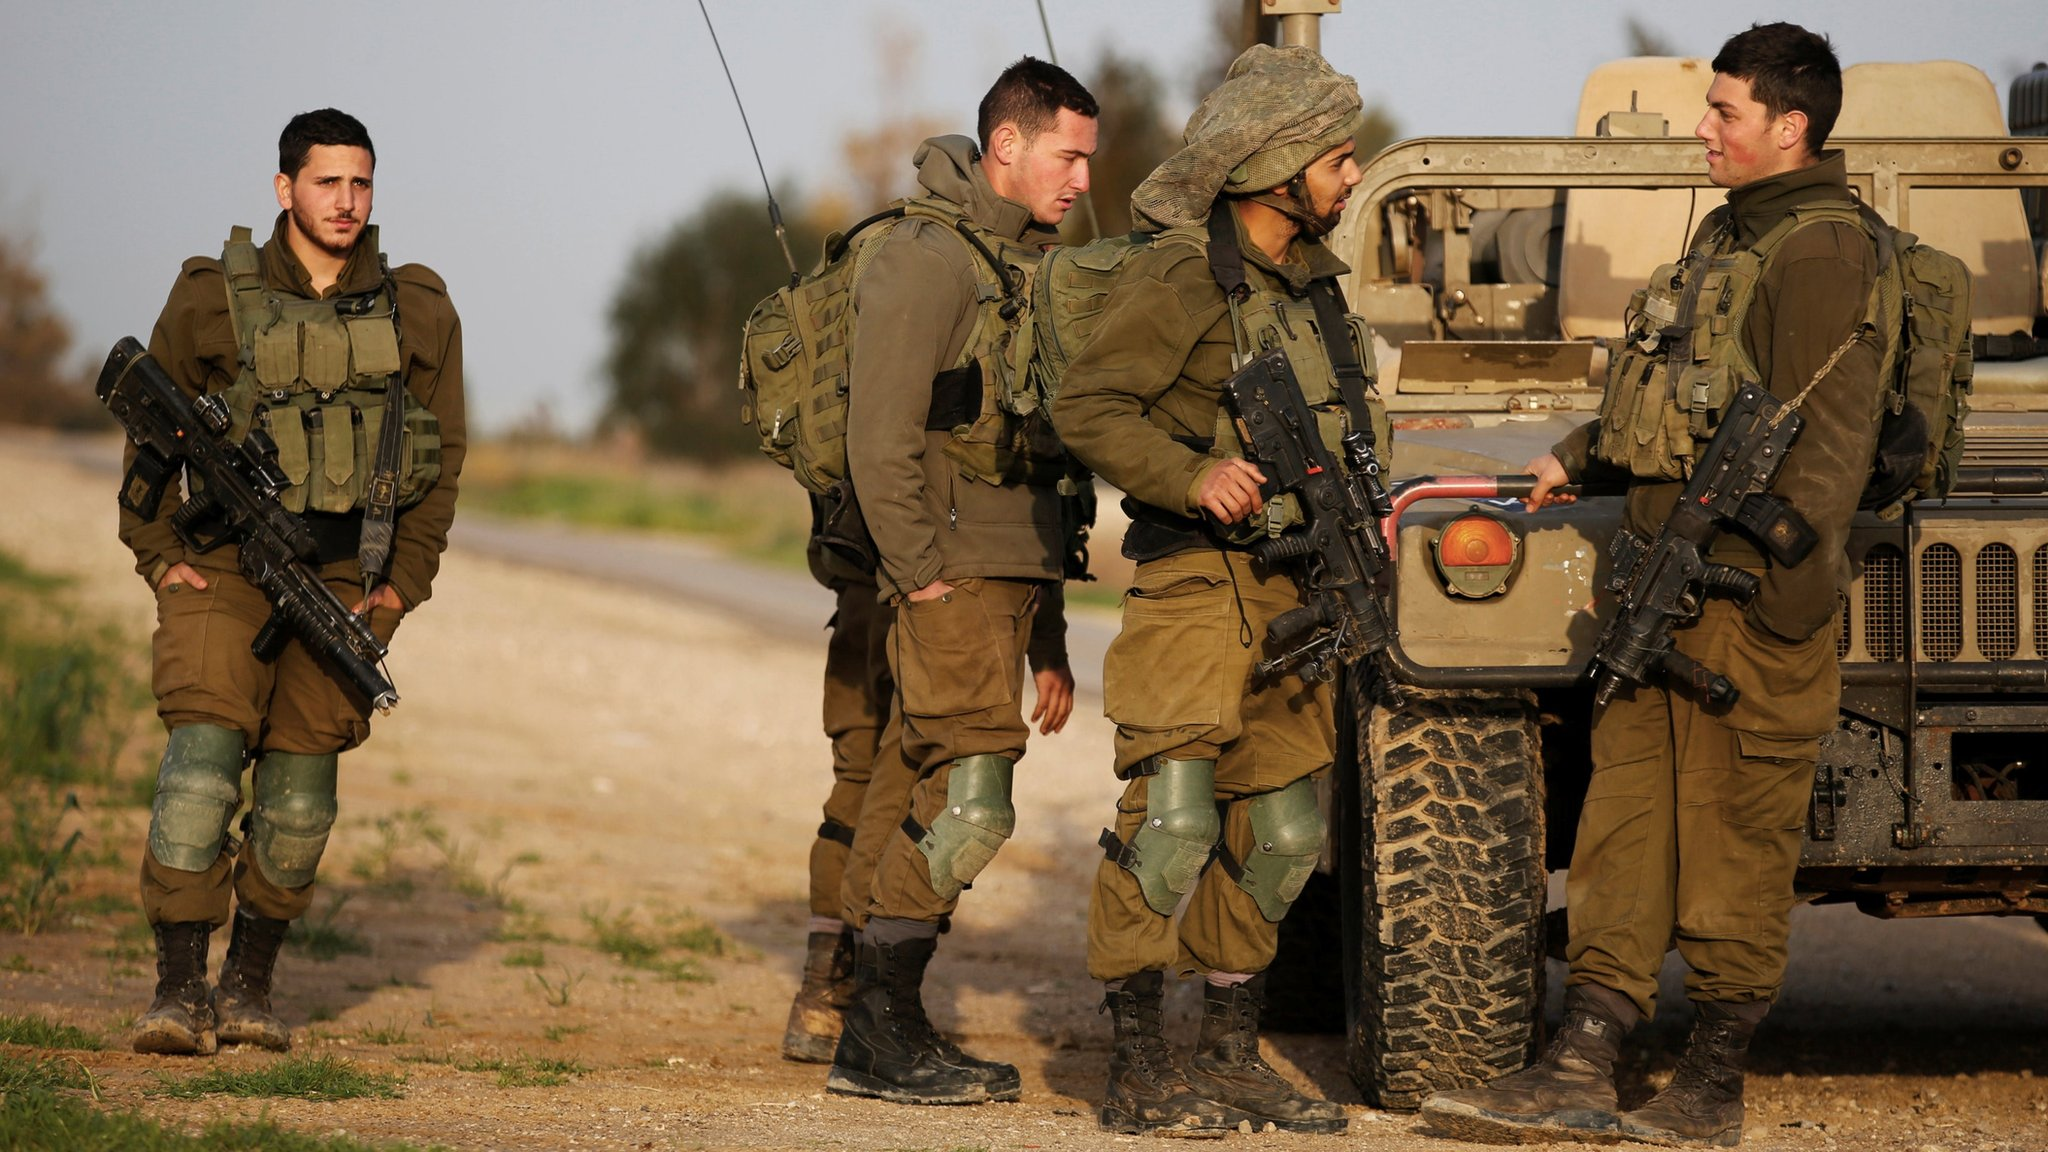 Israel Gaza: Four Israeli soldiers injured in border blast